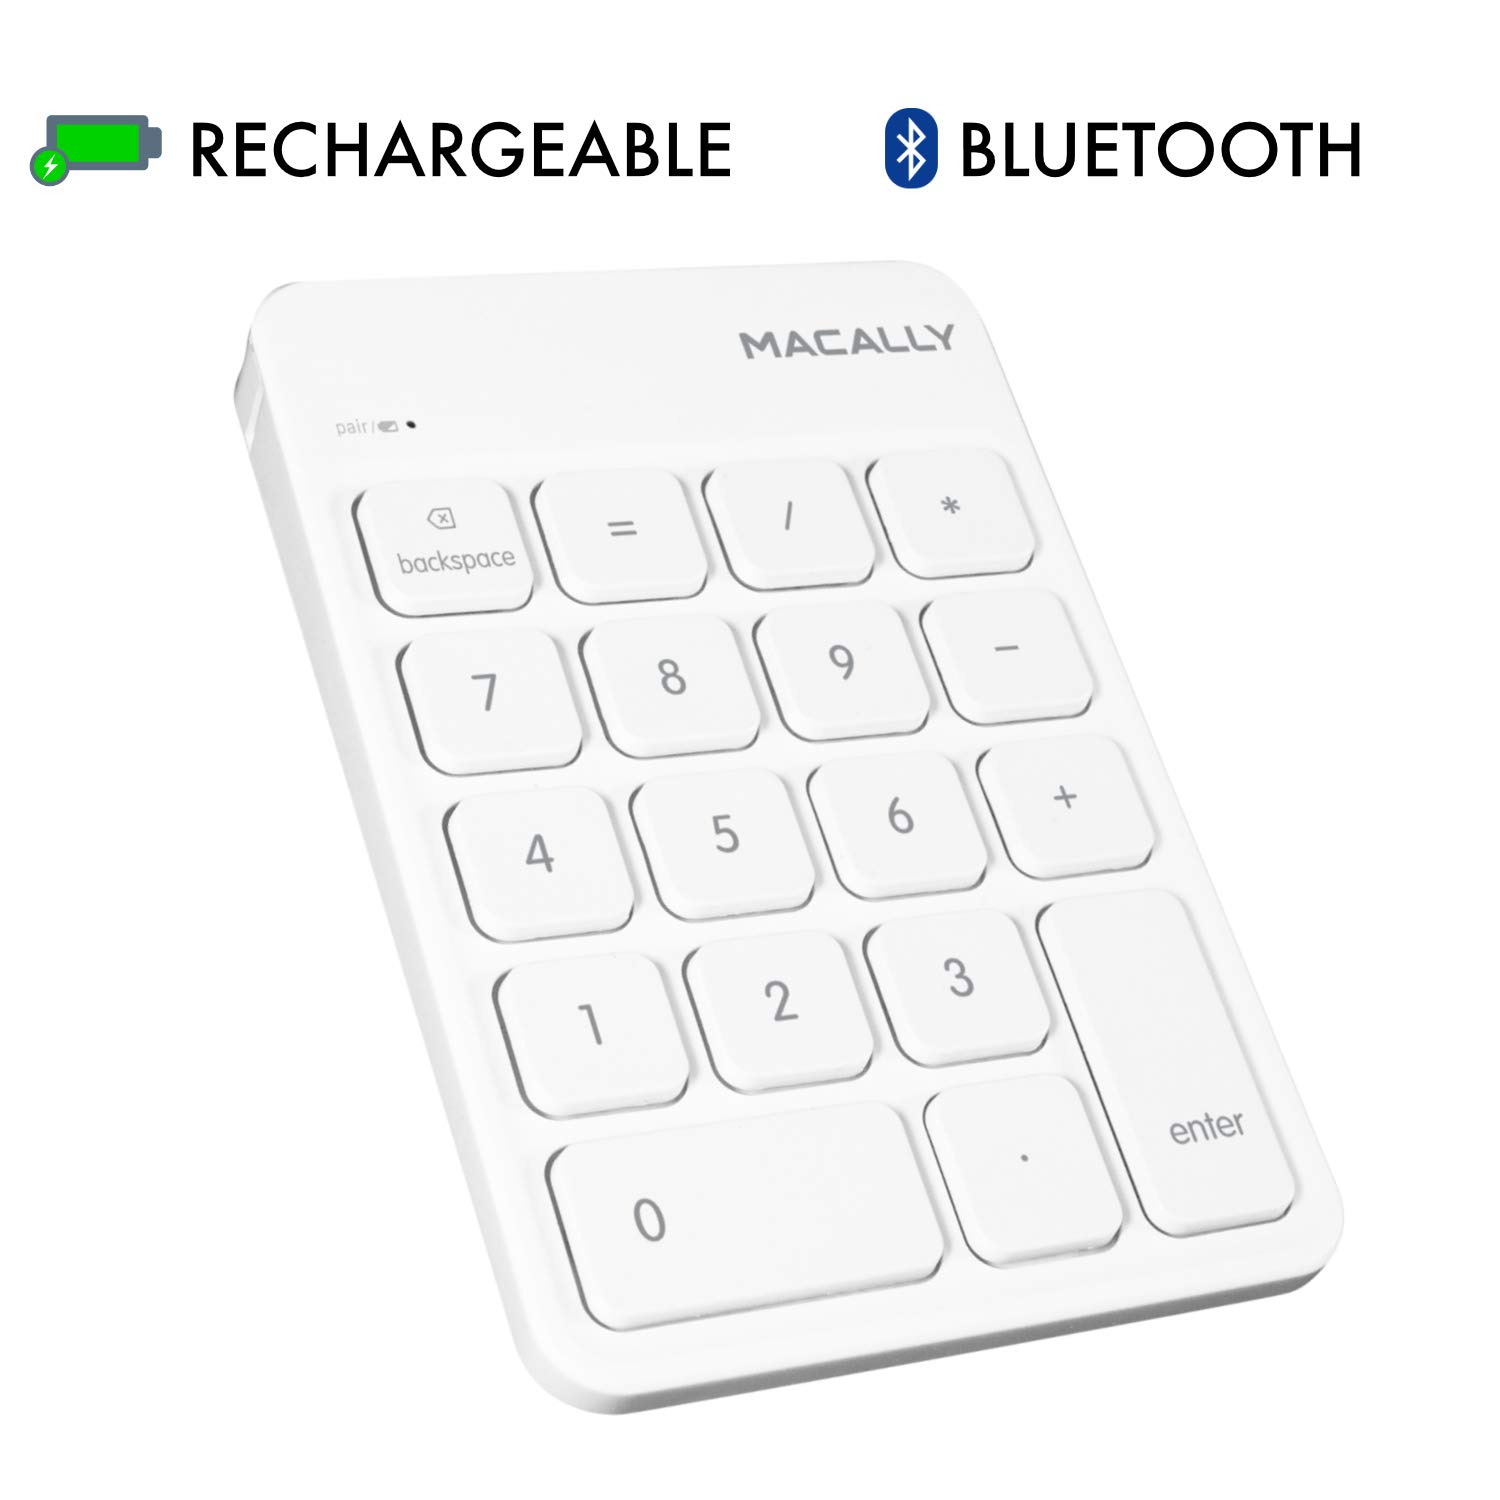 Macally Wireless Bluetooth Numeric Keypad Keyboard for Laptop, Apple Mac iMac MacBook Pro/Air, iPad Windows PC, Tablet, or Desktop Computer Rechargeable 18 Key Slim Number Pad Numerical Numpad - White by Macally